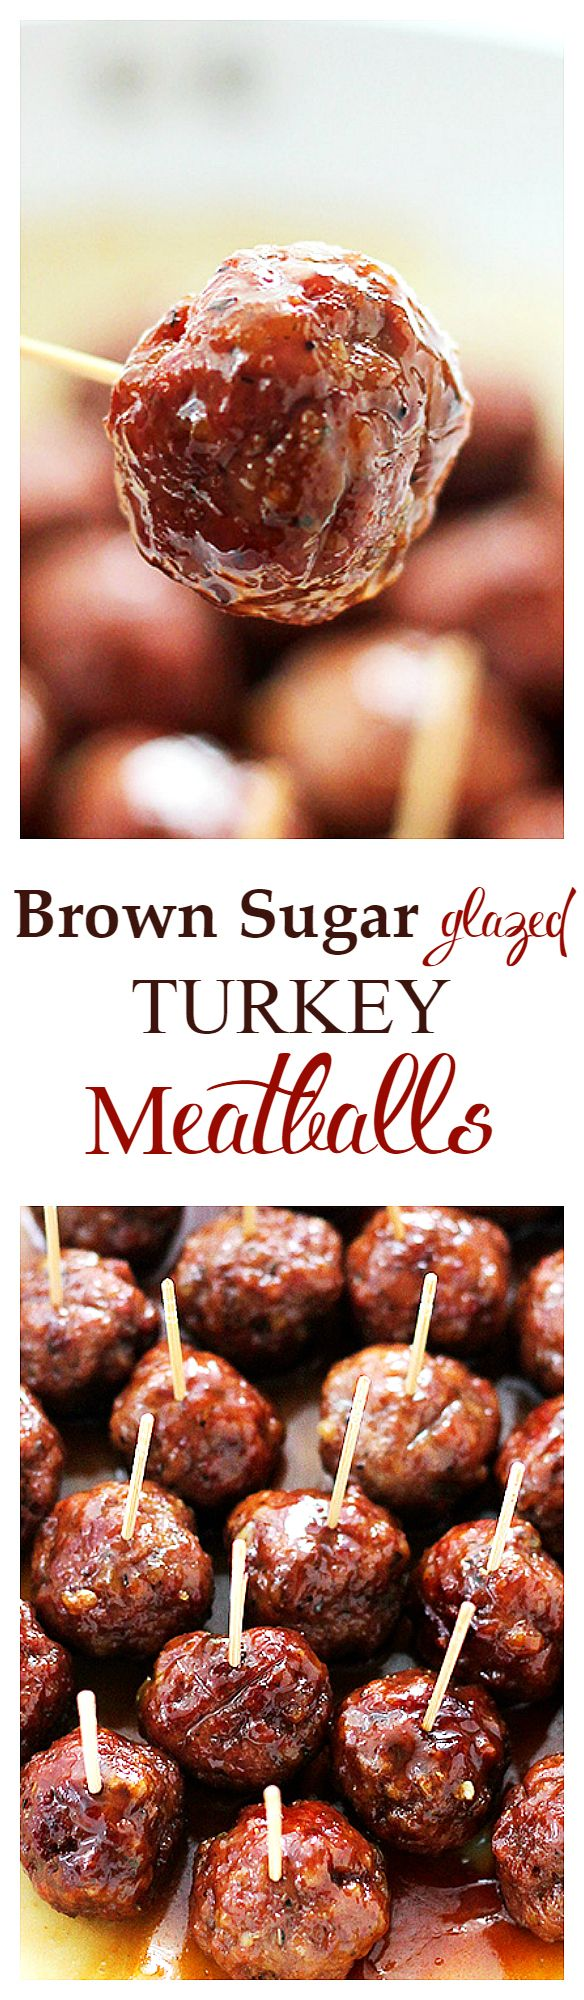 {USA} These Brown Sugar-Glazed Turkey Meatballs pack a bite-size punch of sweet and spicy, juicy and delicious! Perfect as an appetizer or dinner!